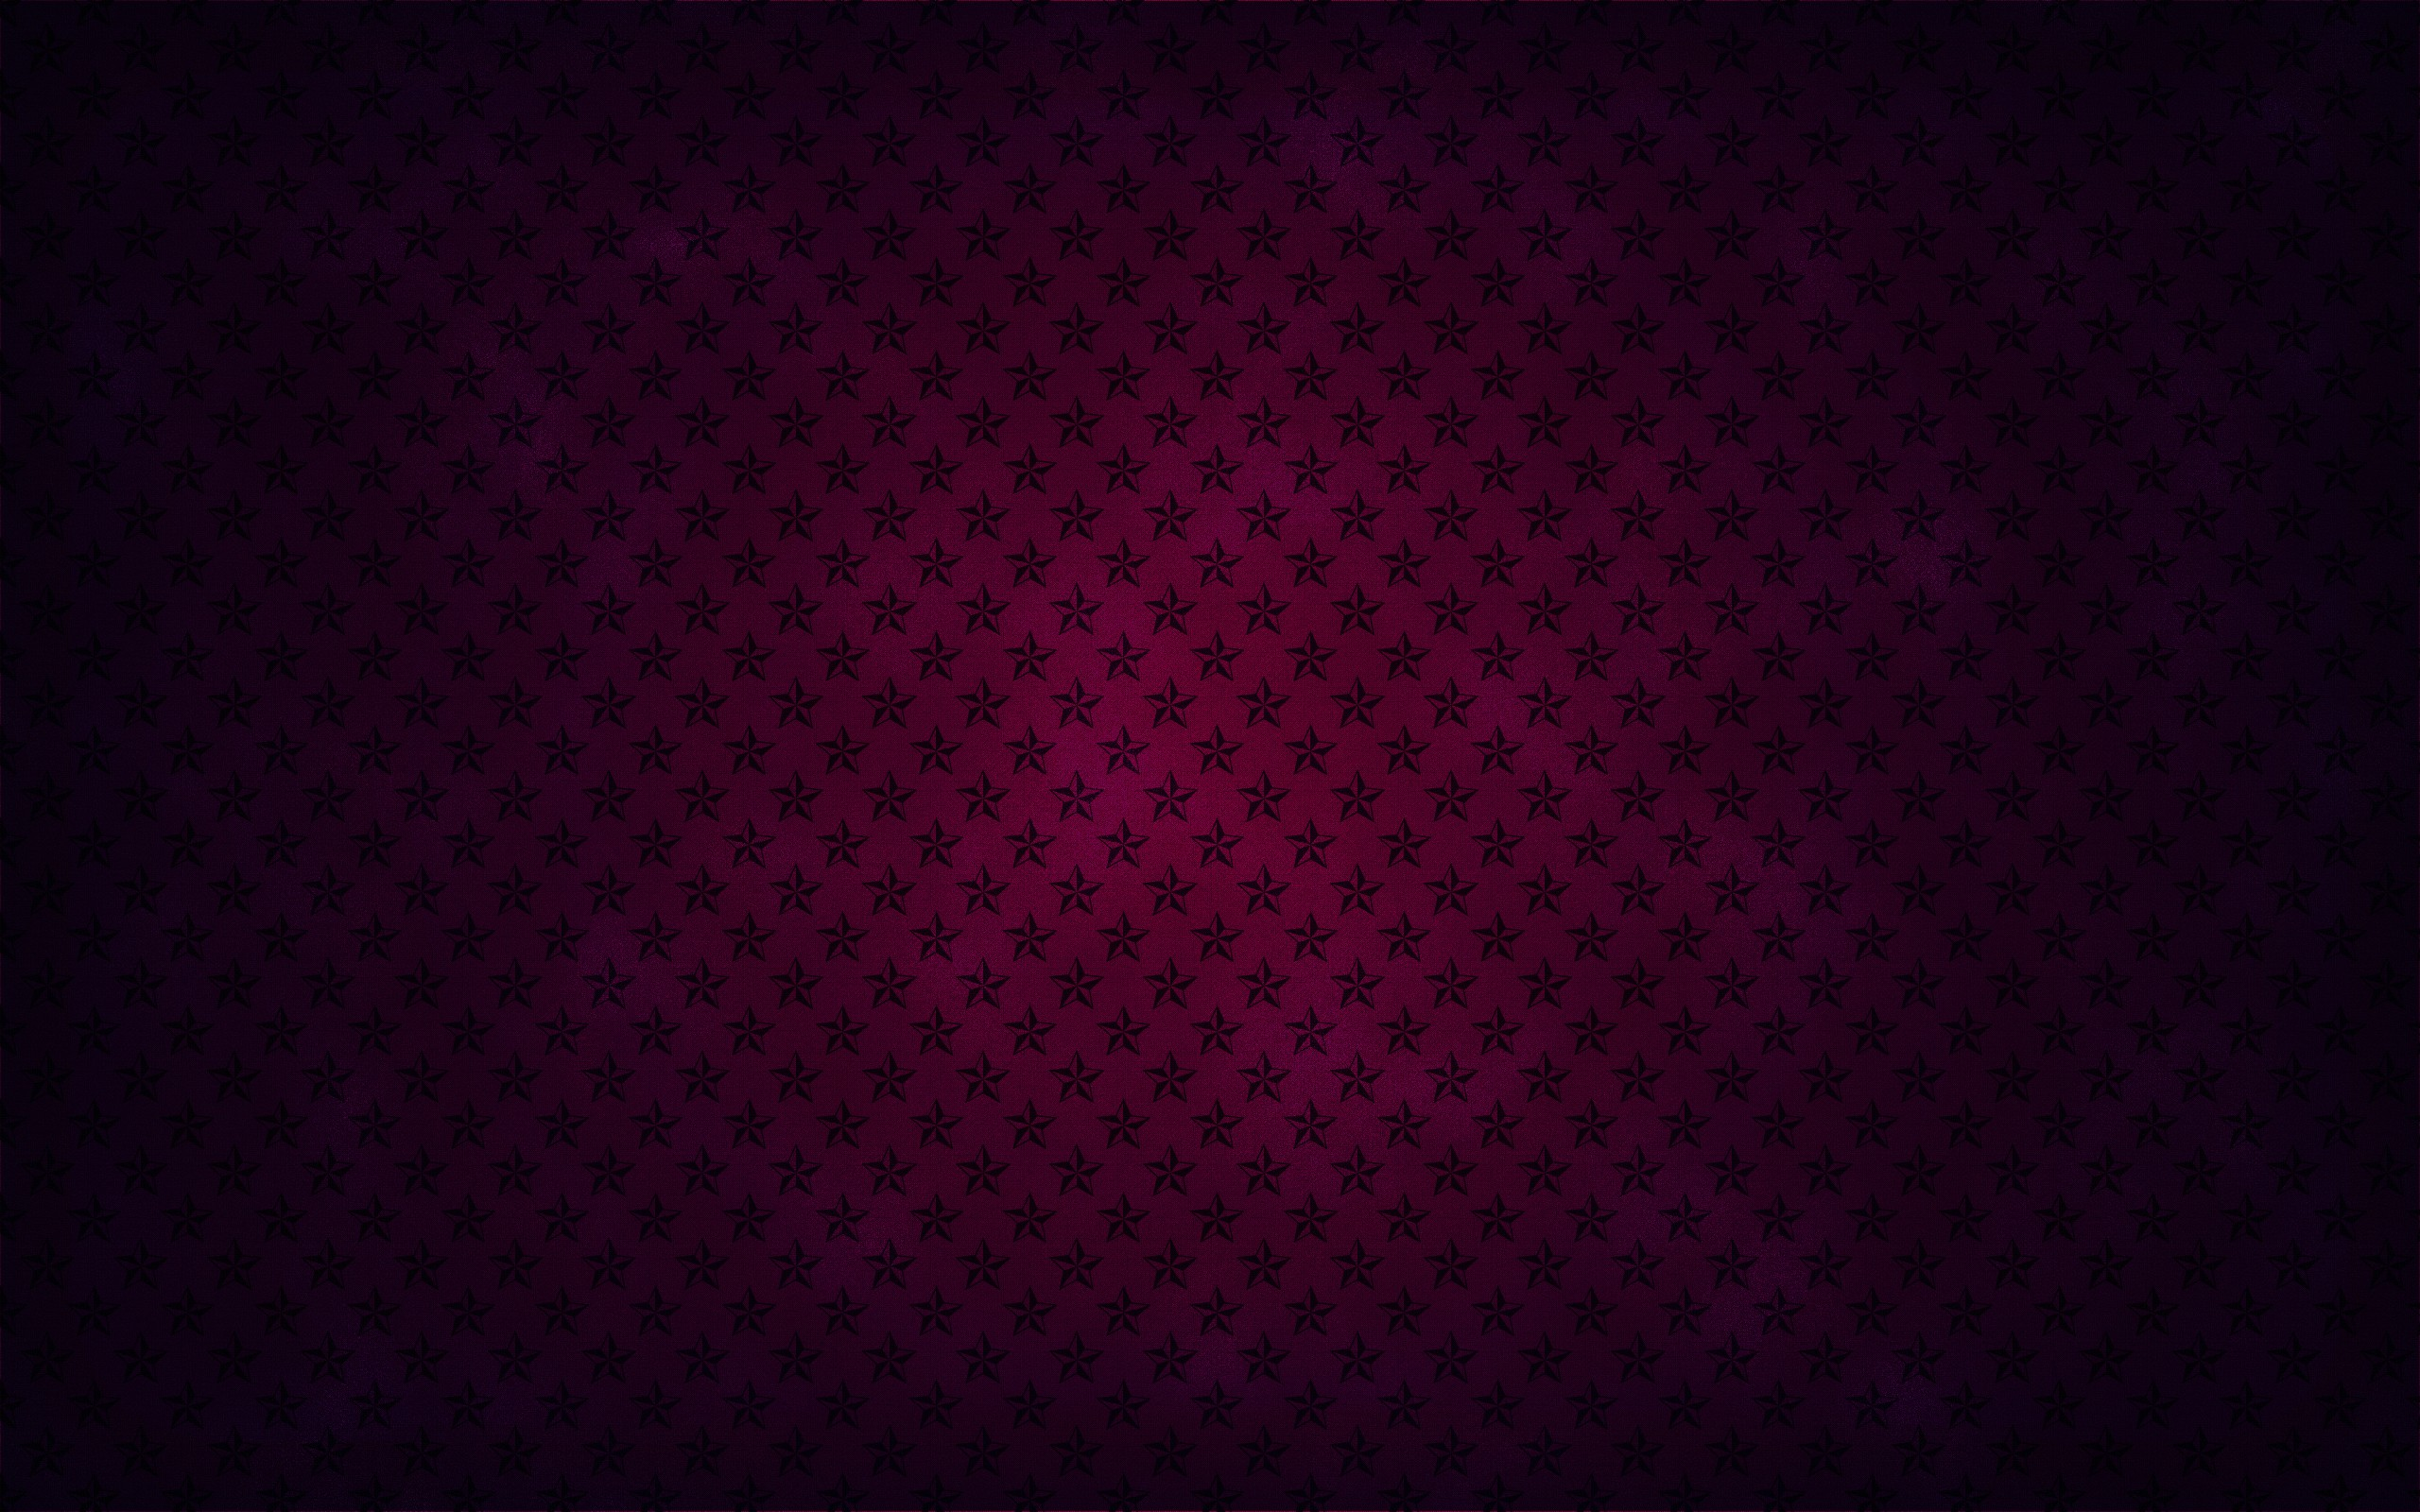 Dark Pink Wallpapers - WallpaperSafari